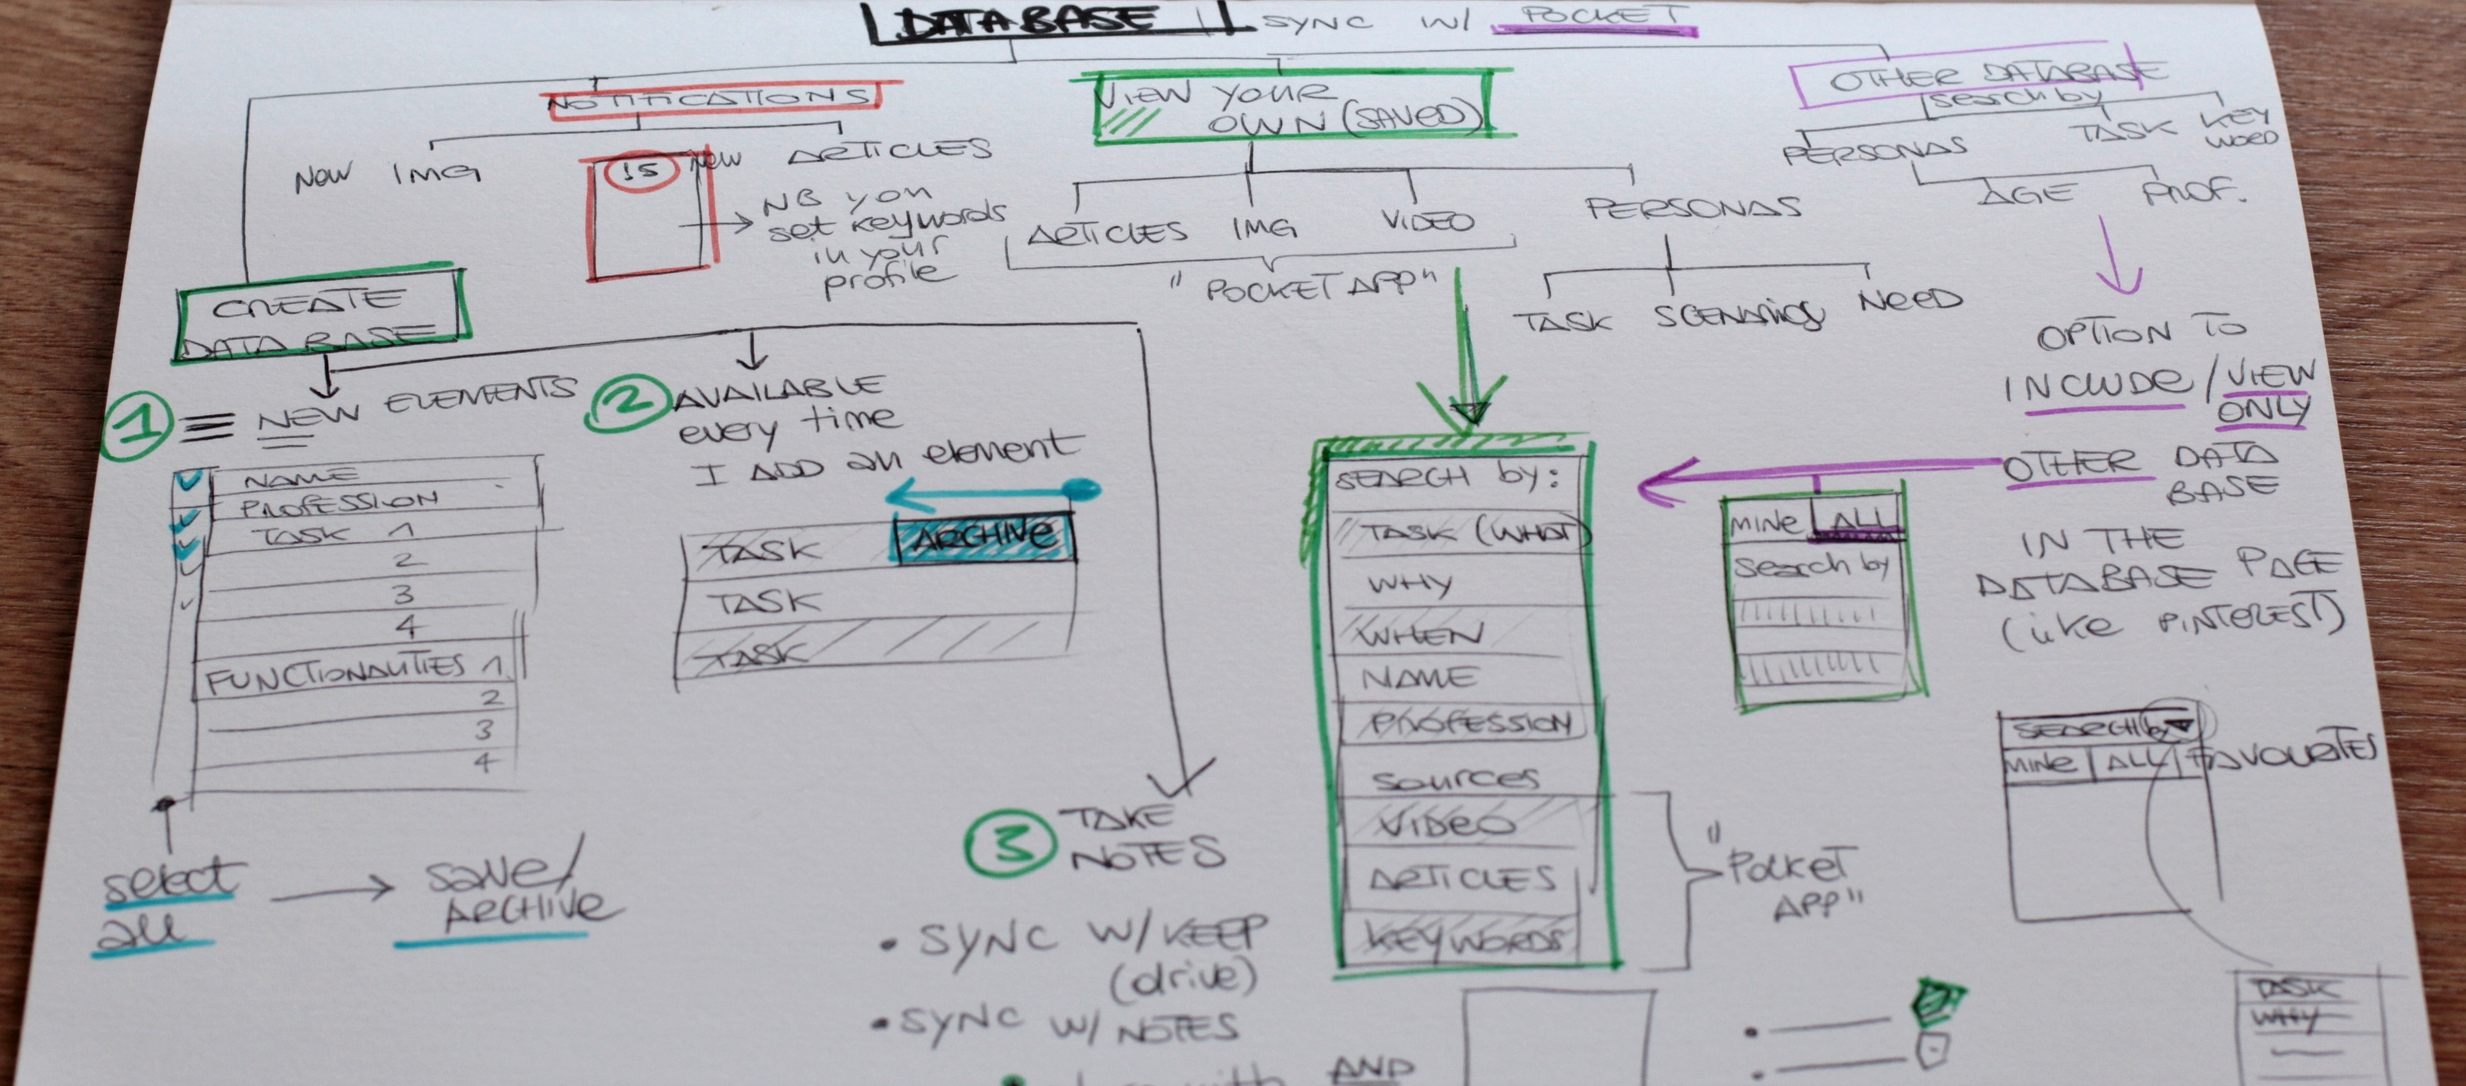 User flows (Sketches)